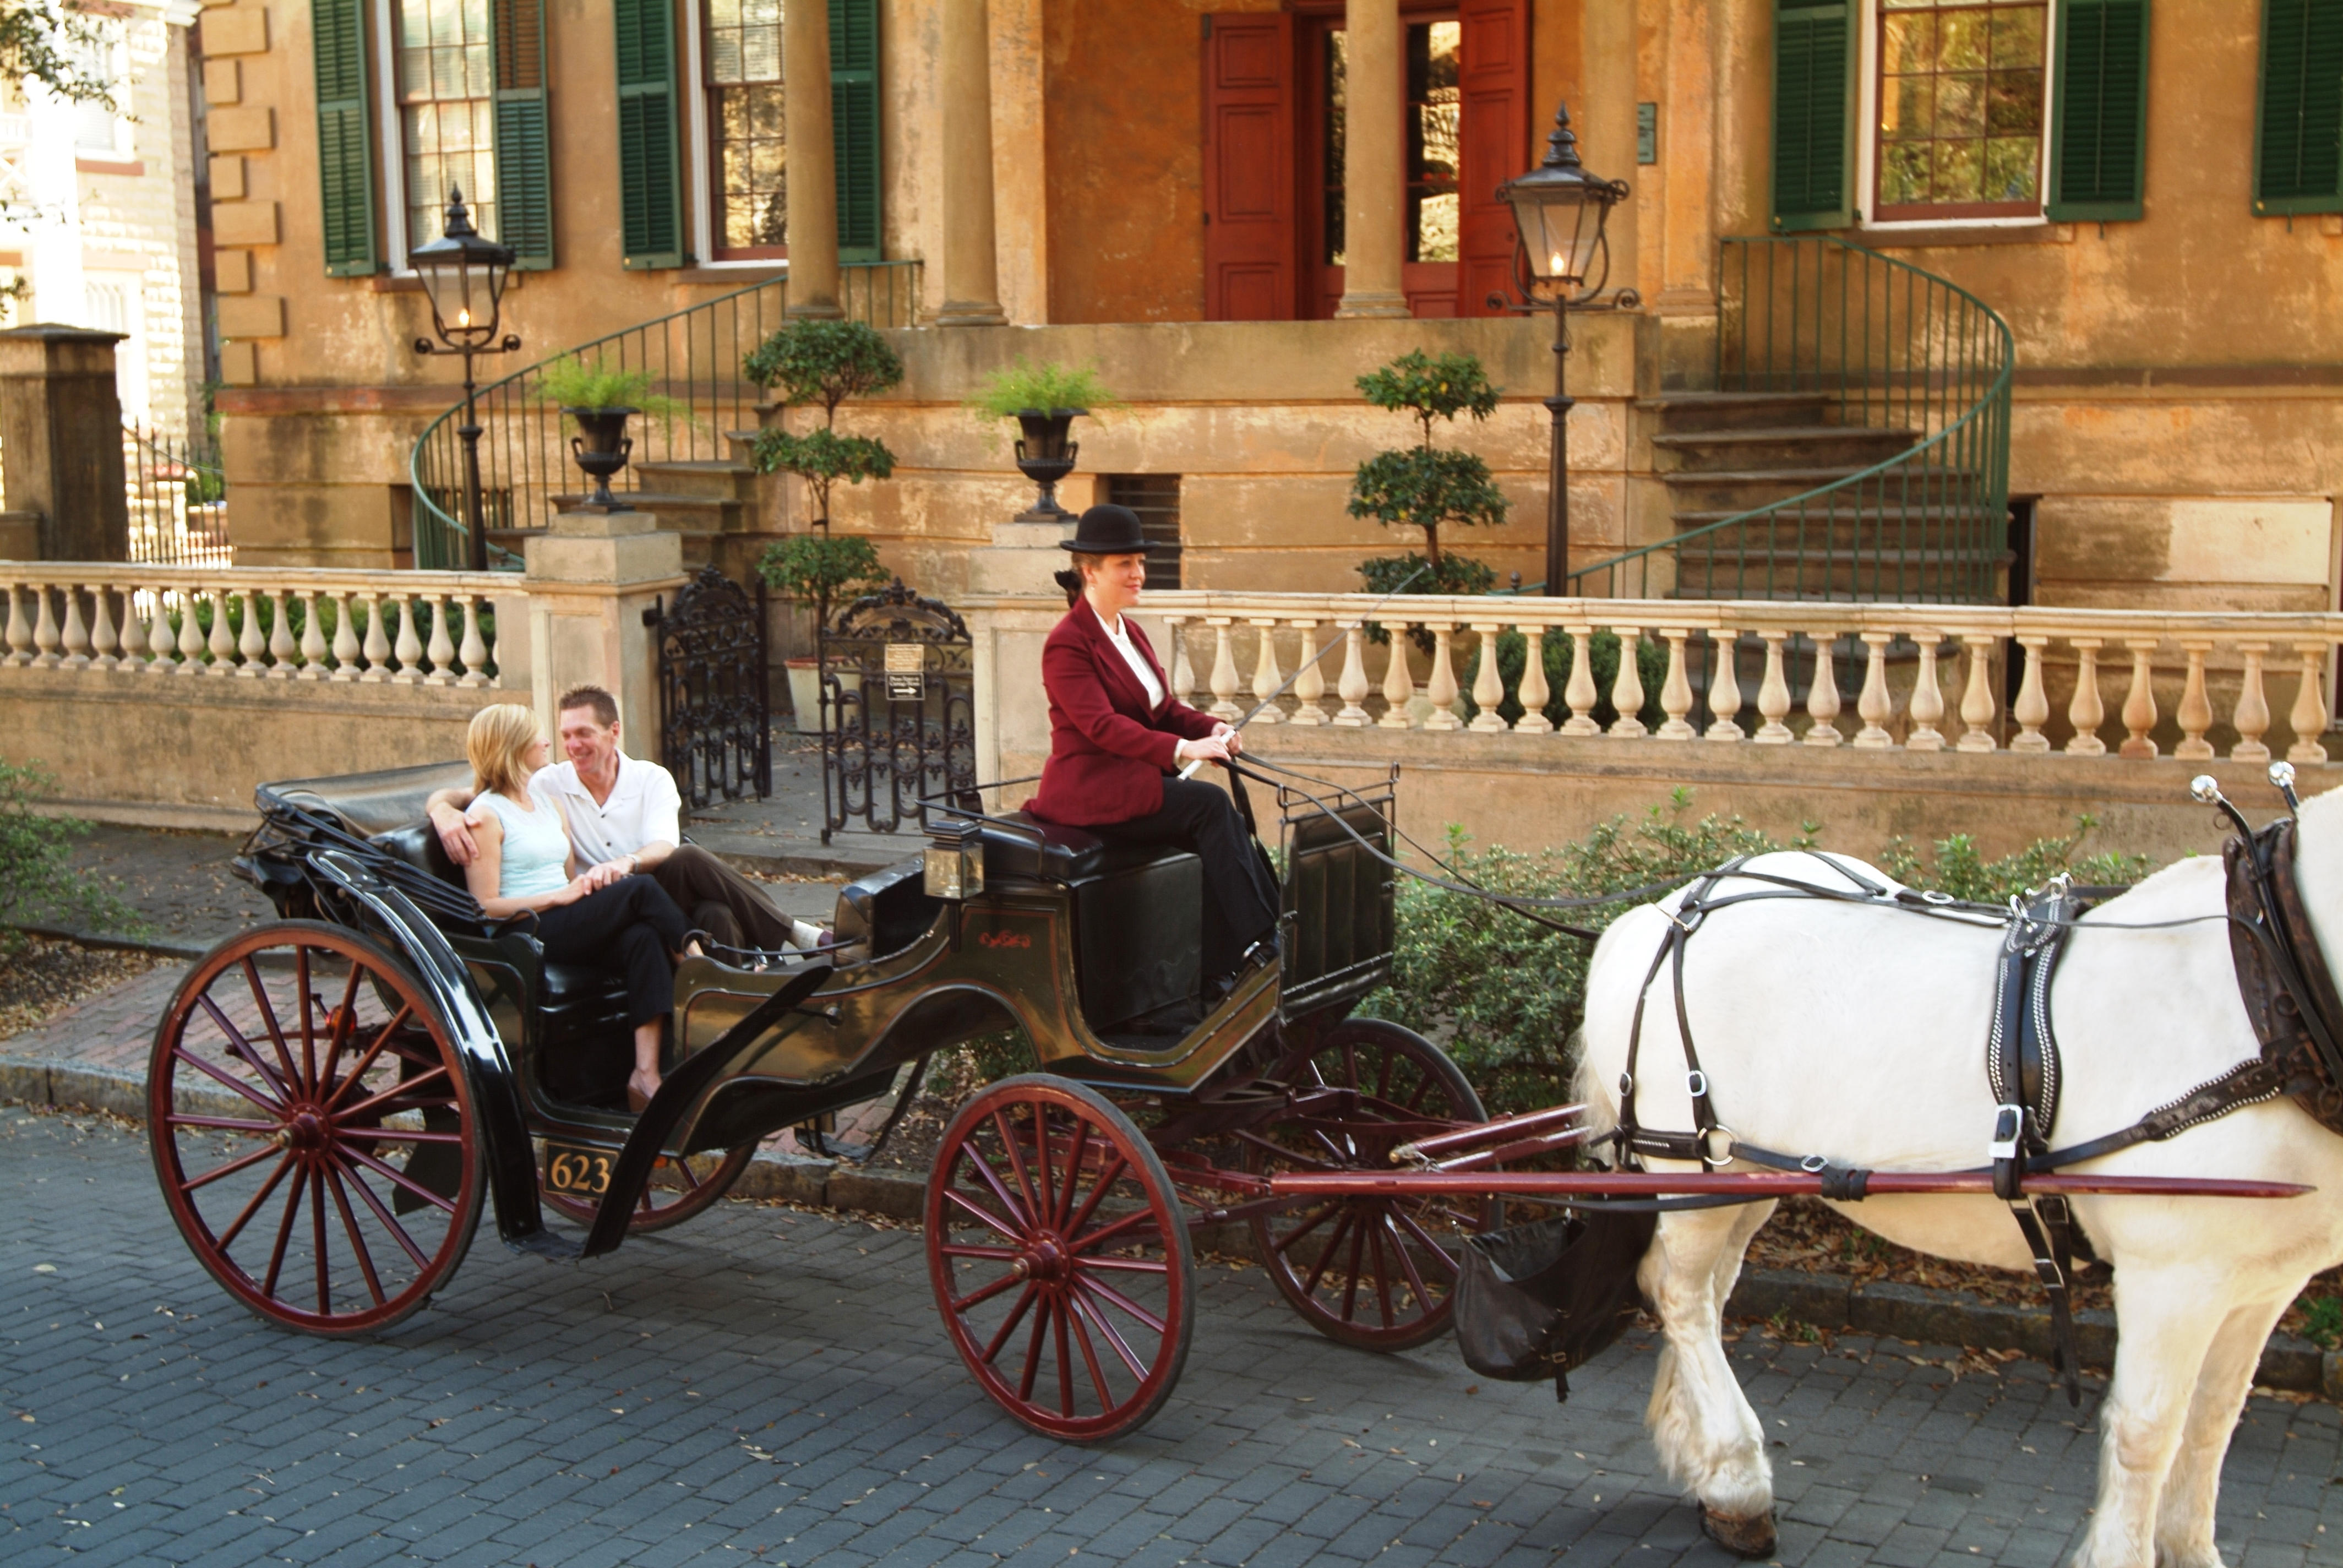 Savannah established the country's largest urban National Historic Landmark District in 1955. Here visitors enjoy a carriage ride around historic Savannah.